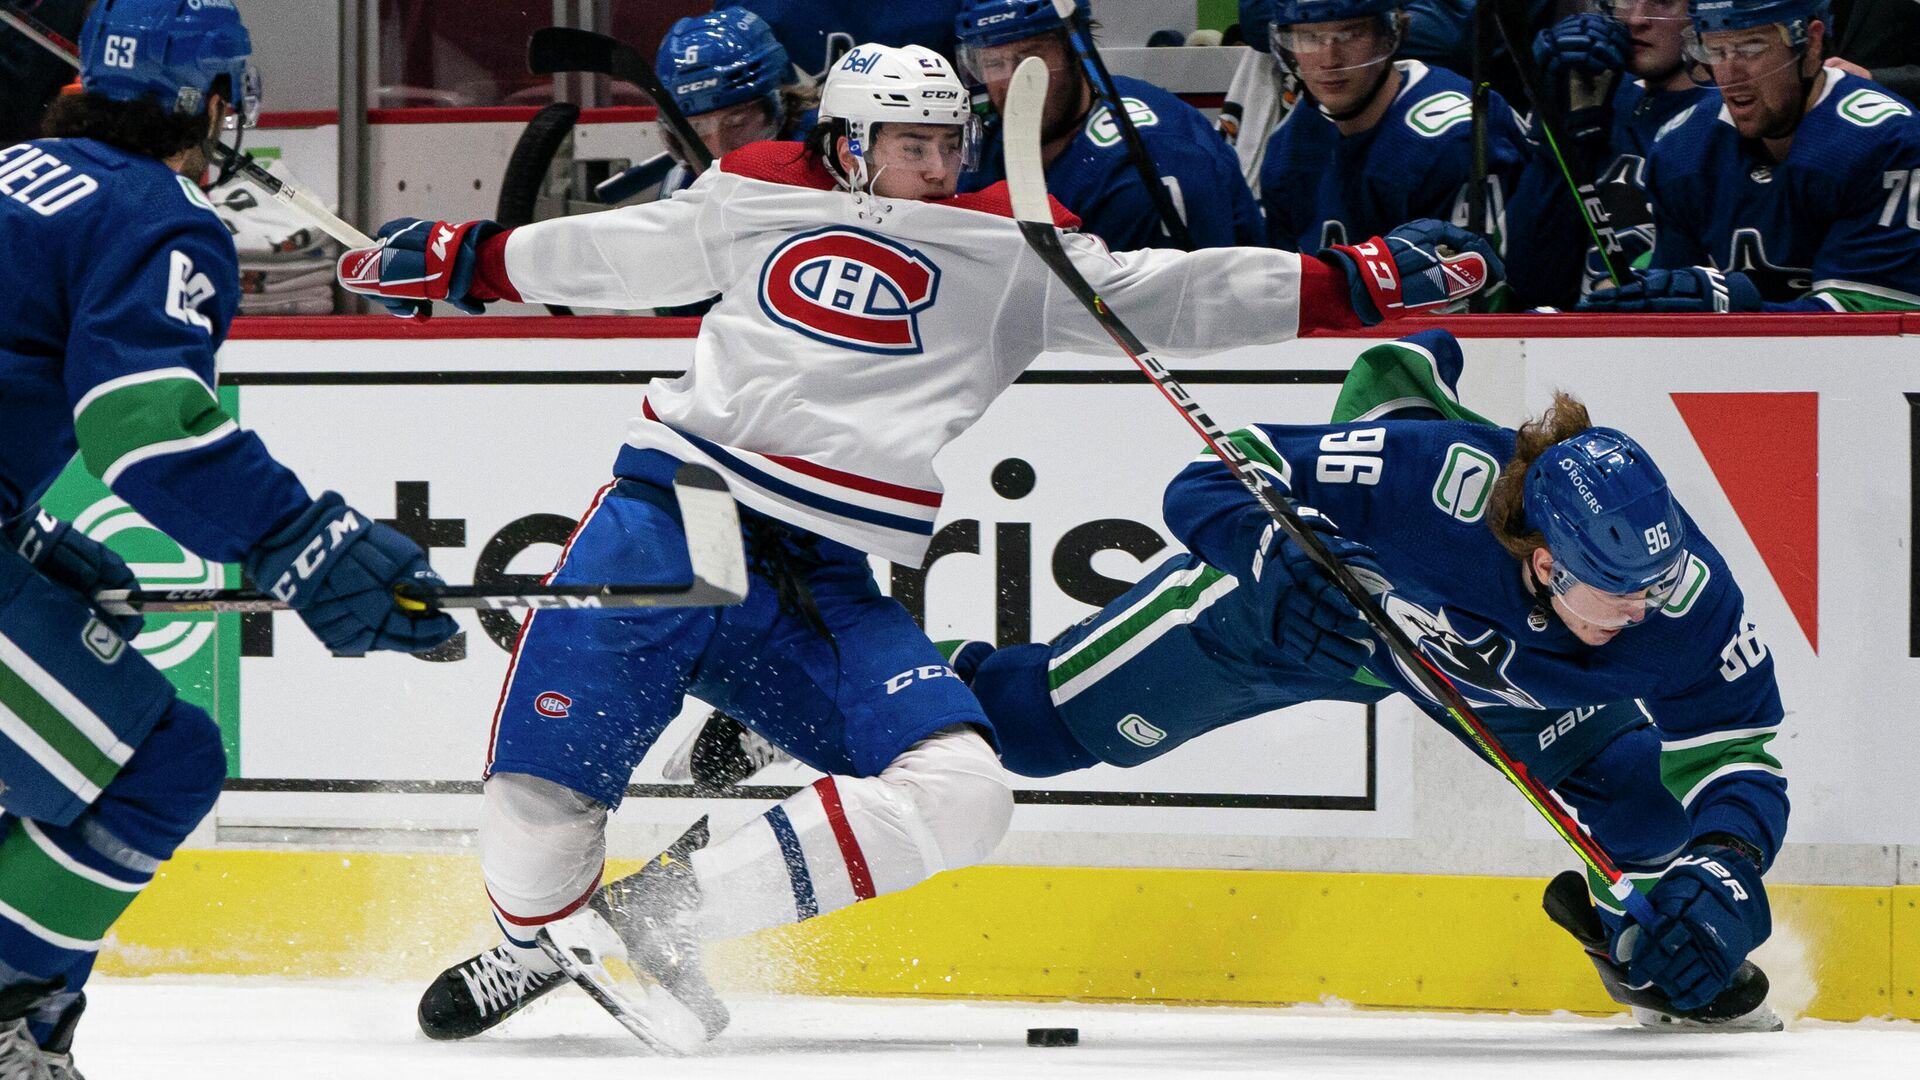 VANCOUVER, BC - JANUARY 20: Alexander Romanov #27 of the Montreal Canadiens and Adam Gaudette #96 of the Vancouver Canucks collide while battling for the loose puck during NHL hockey action at Rogers Arena on January 20, 2021 in Vancouver, Canada.   Rich Lam/Getty Images/AFP - РИА Новости, 1920, 21.01.2021